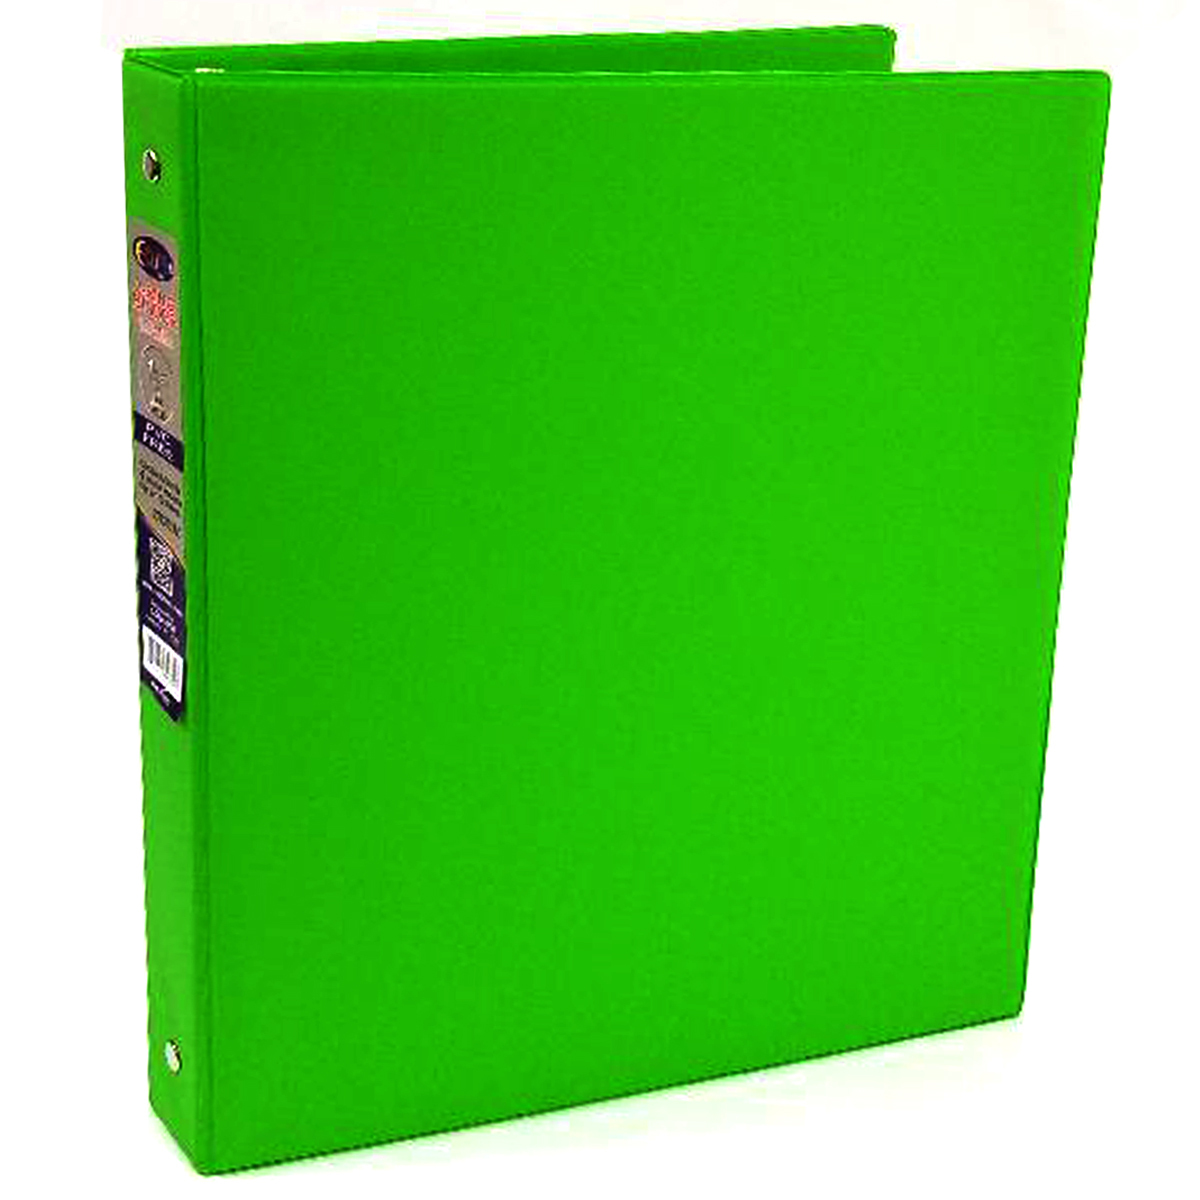 wholesale 1 inch 3 ring vinyl binder green sku 1981545